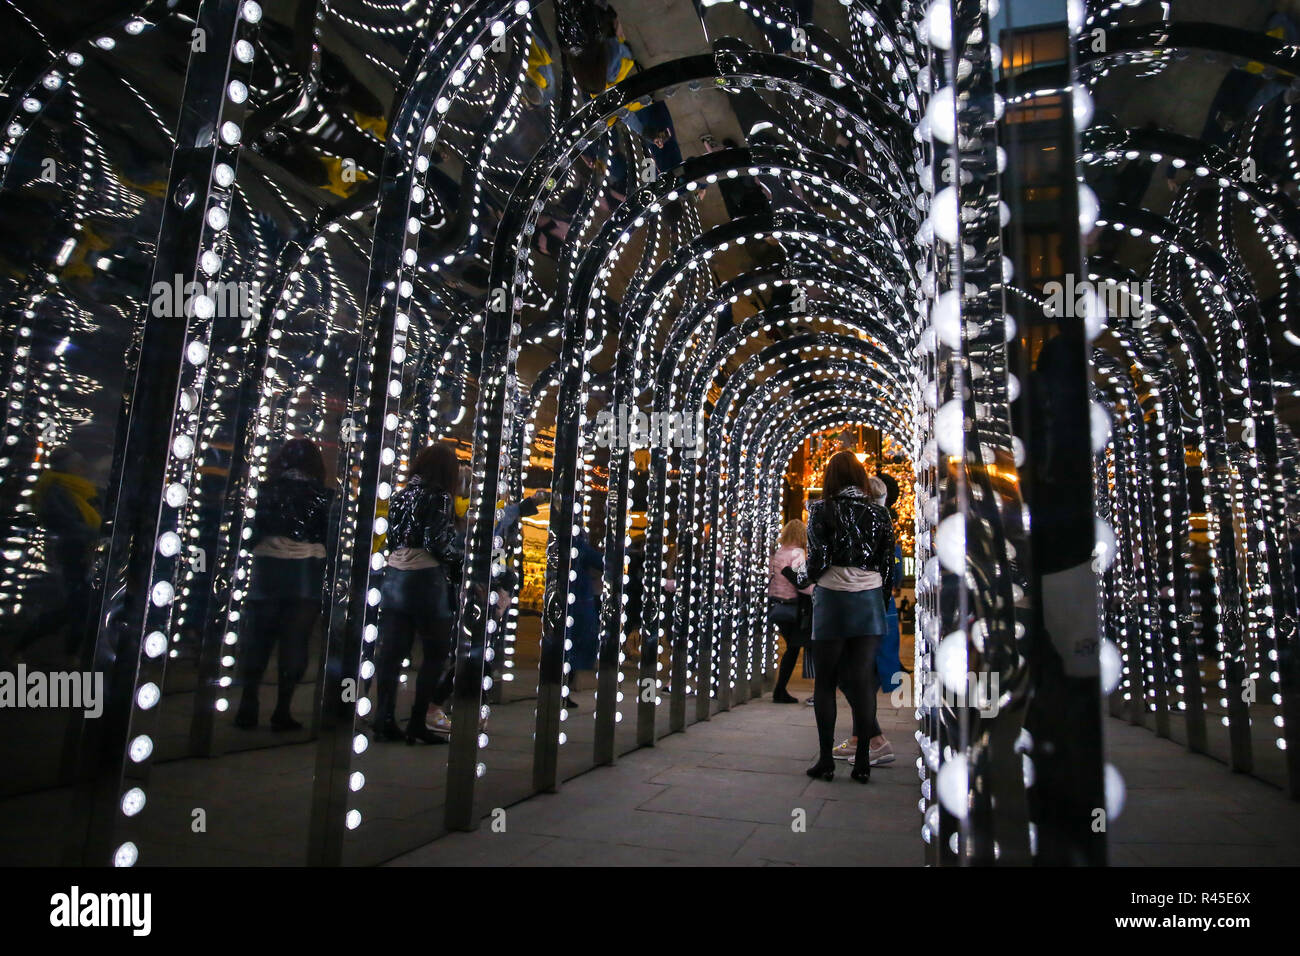 United Kingdom. 25th Nov, 2018. The passage to Conduit Court in Covent Gardens is seen covered with mirrors and lights for the festive season. Credit: Dinendra Haria/SOPA Images/ZUMA Wire/Alamy Live News Stock Photo